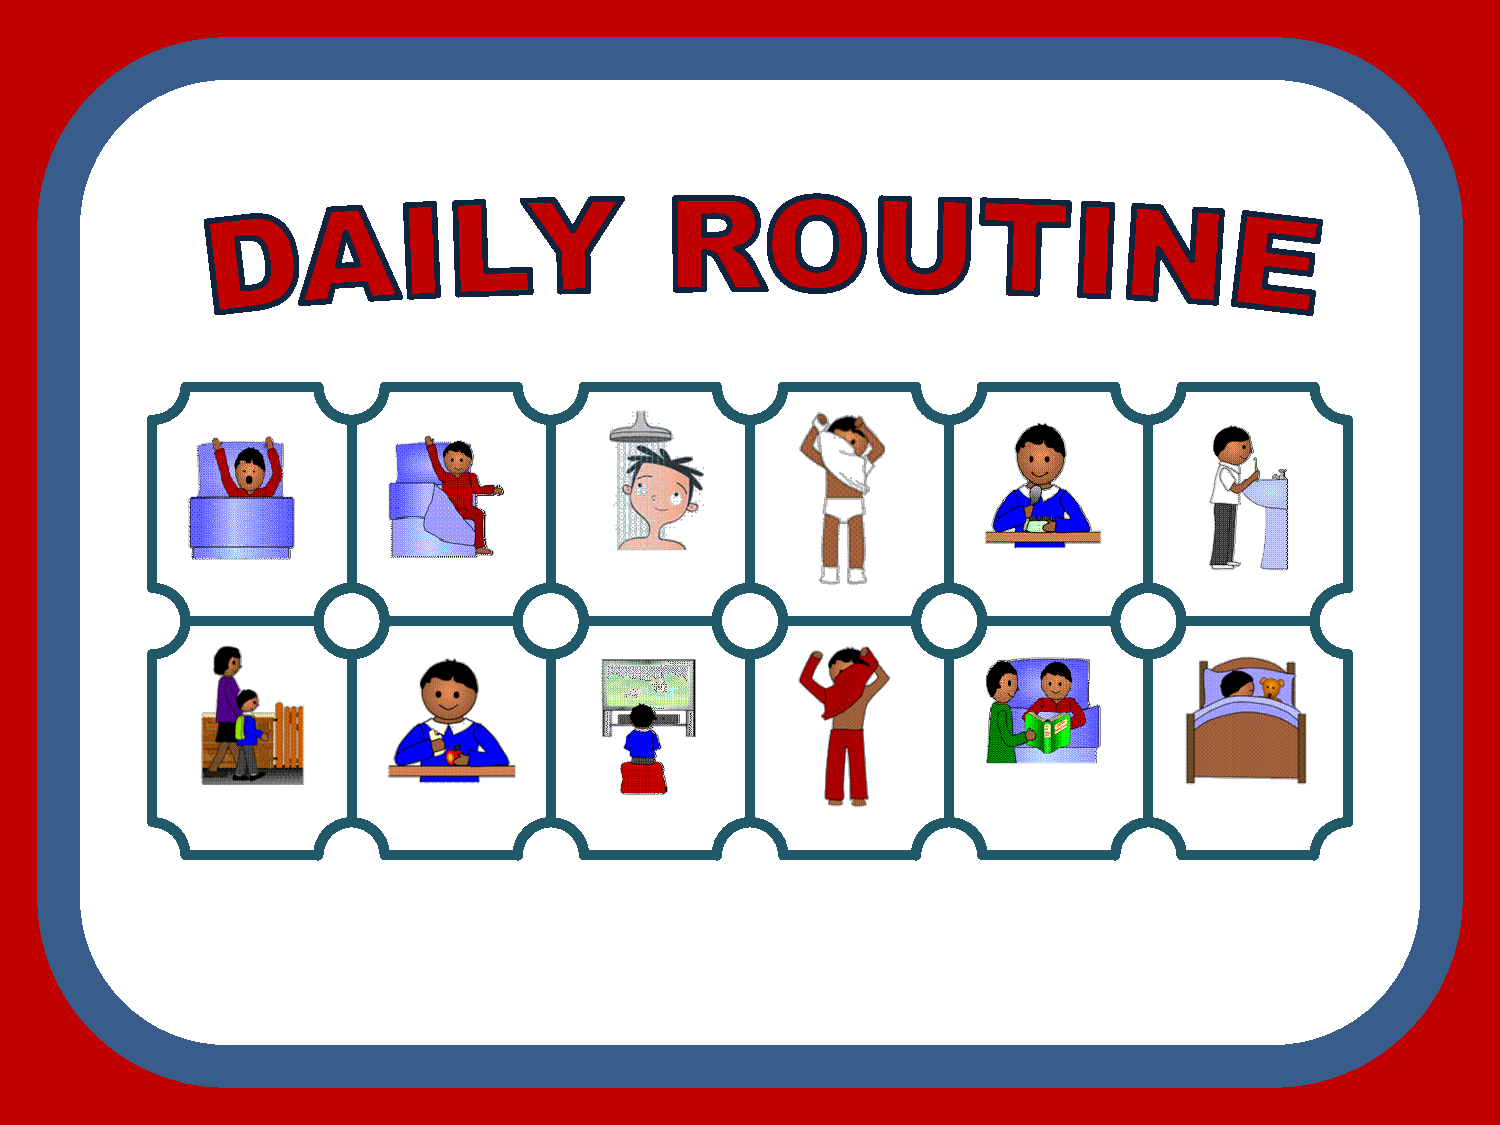 daily routine schedule